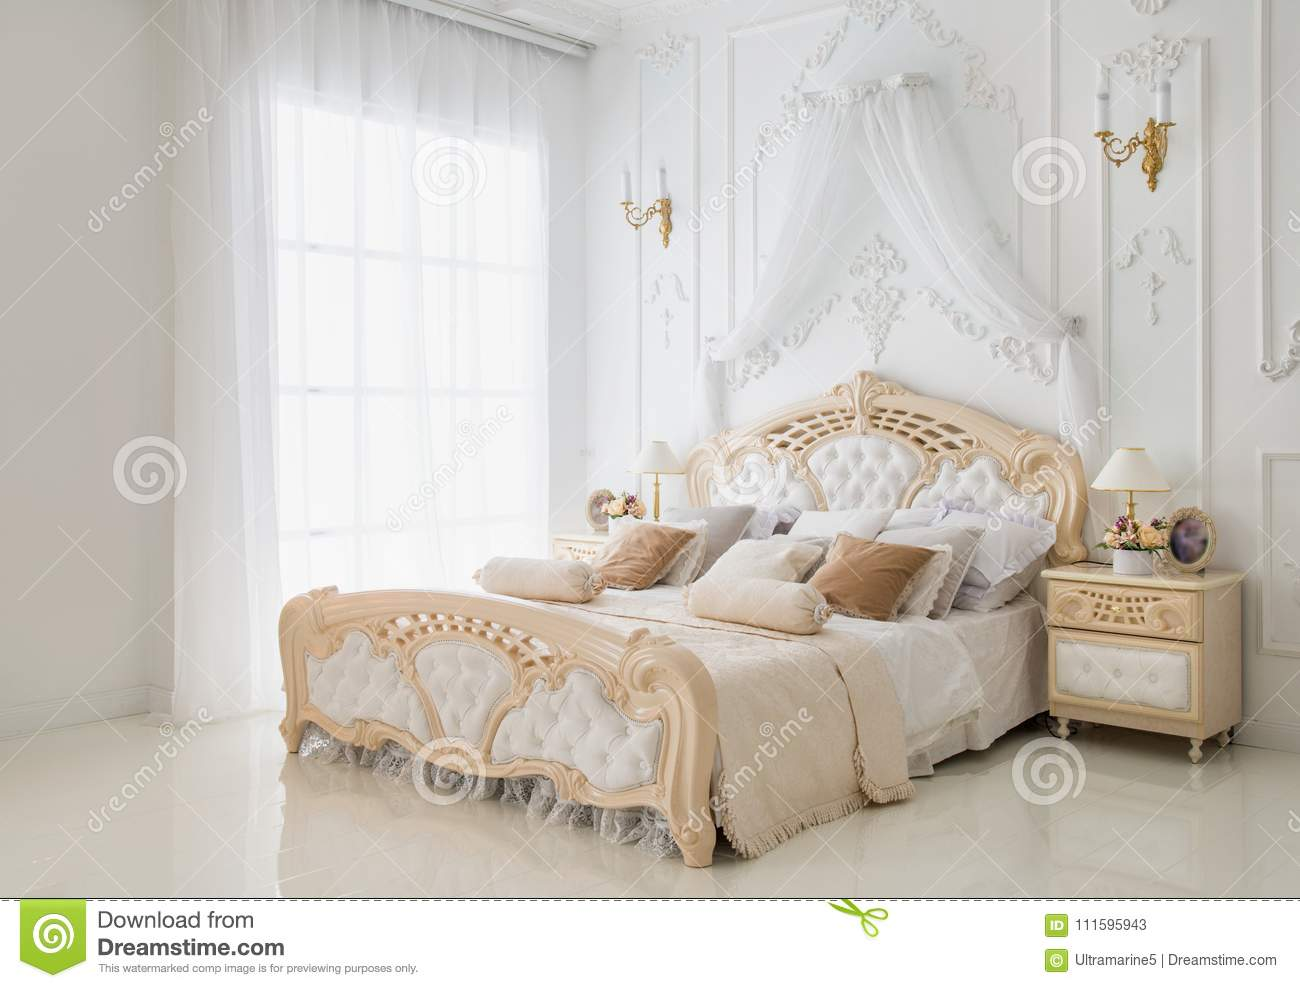 Cozy classic white bedroom walls decorated with fretwork